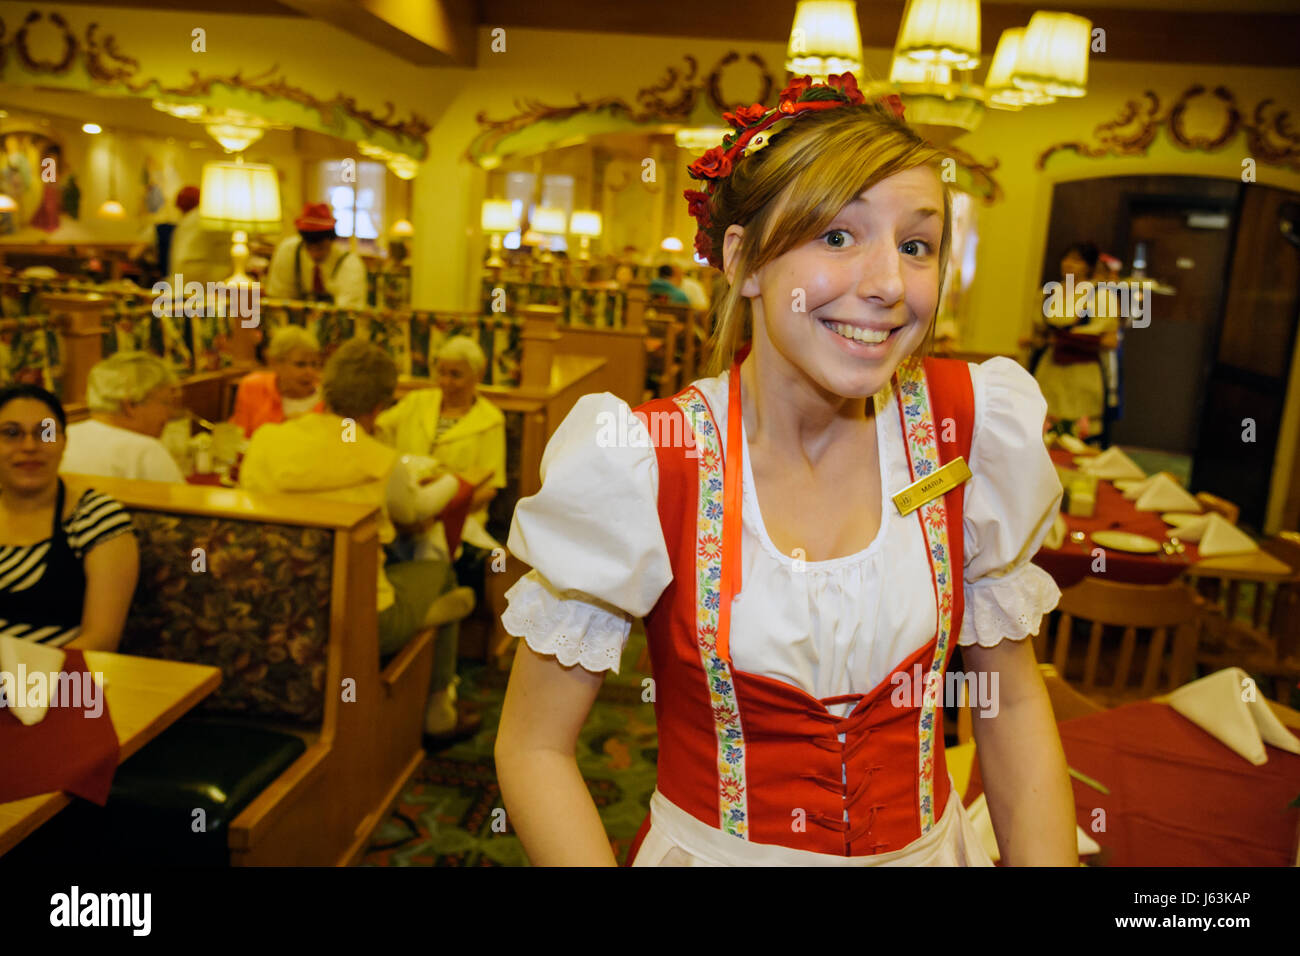 Michigan Frankenmuth Bavarian Inn Restaurant German Ethnic